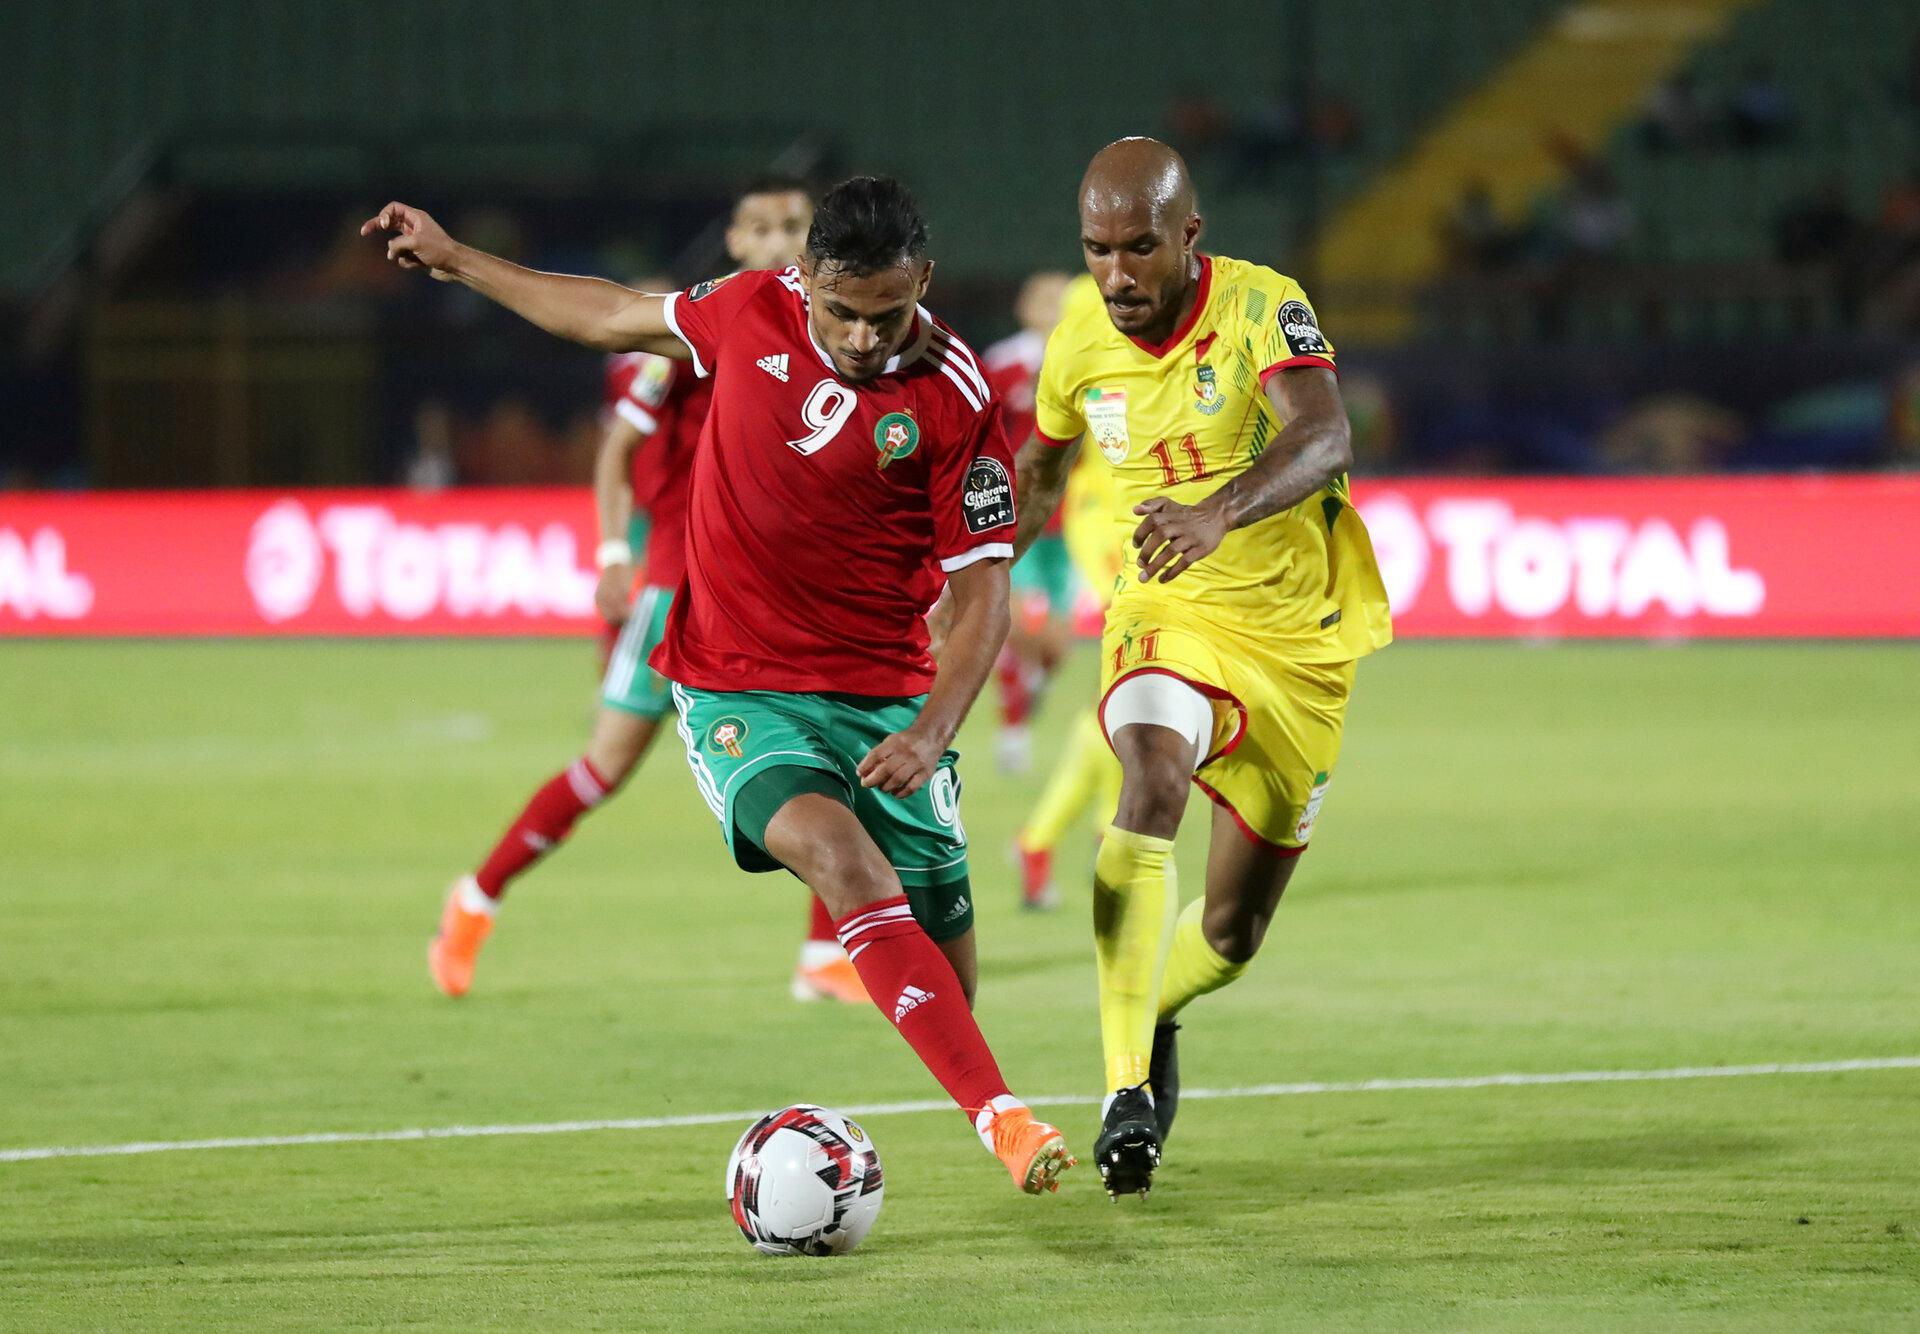 Soccer Football - Africa Cup of Nations 2019 - Round of 16 - Morocco v Benin - Al Salam Stadium, Cairo, Egypt - July 5, 2019  Morocco's Sofiane Boufal in action with Benin's Emmanuelle Imorou      REUTERS/Suhaib Salem